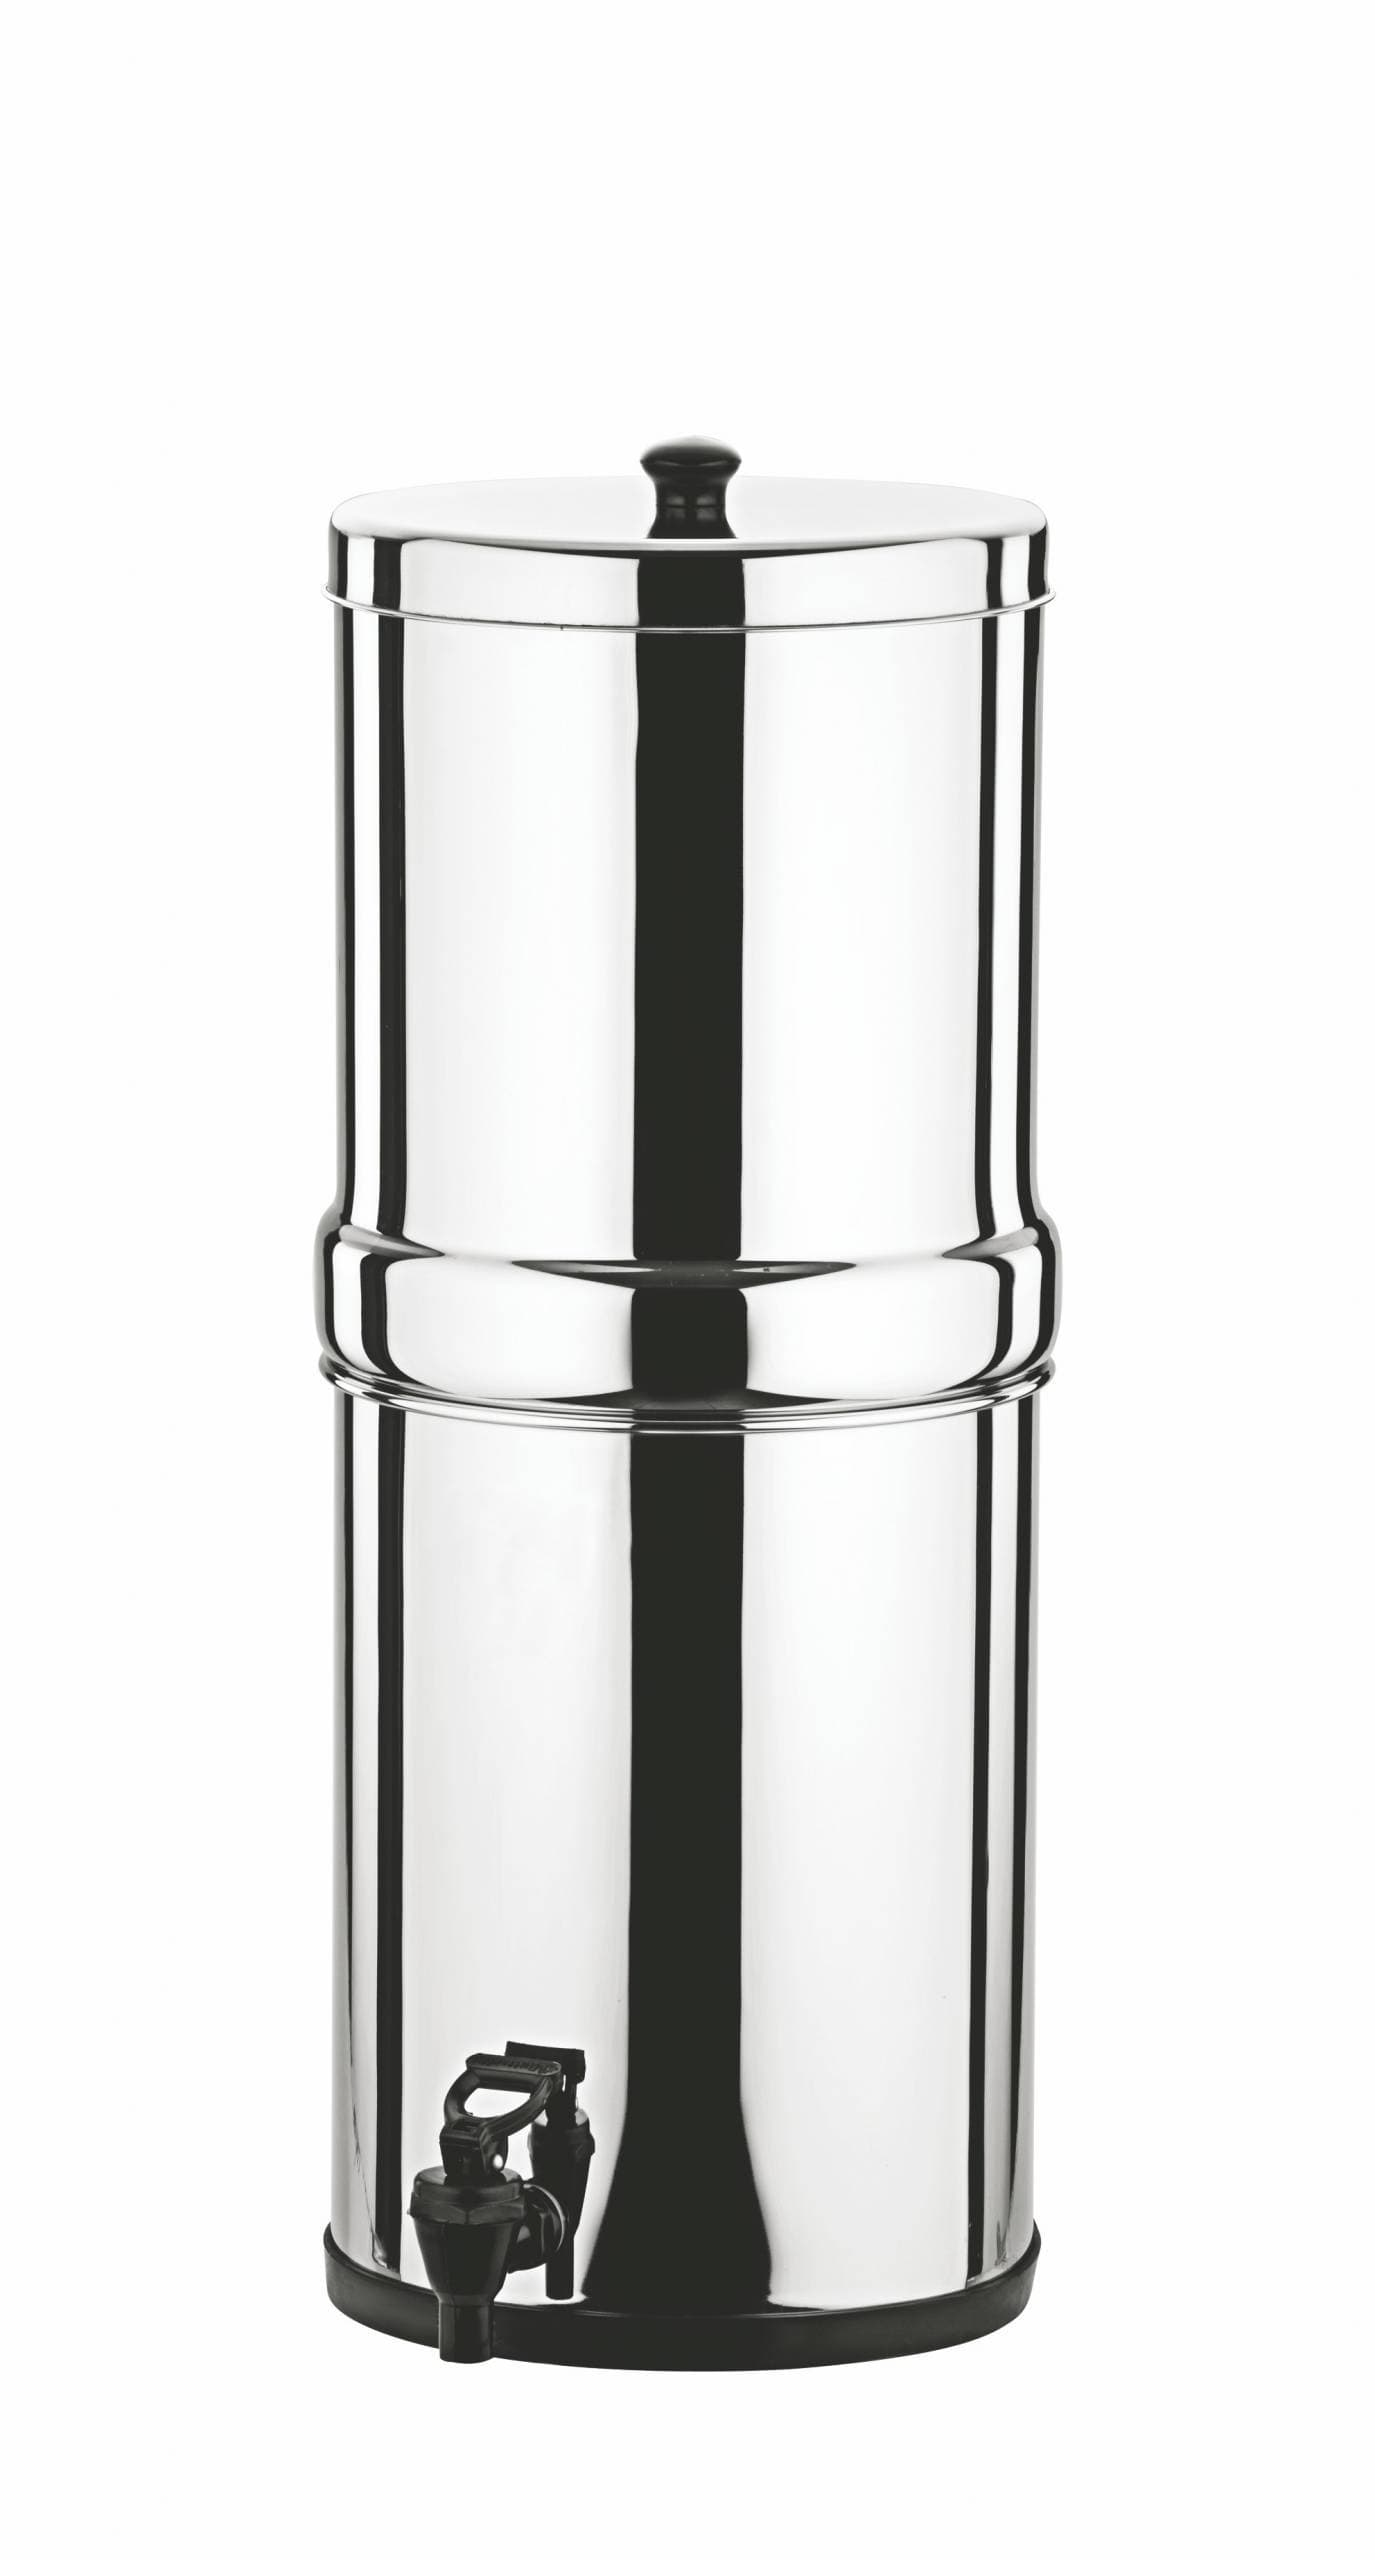 Butterfly Stainless Steel Water Filter - KITCHEN MART